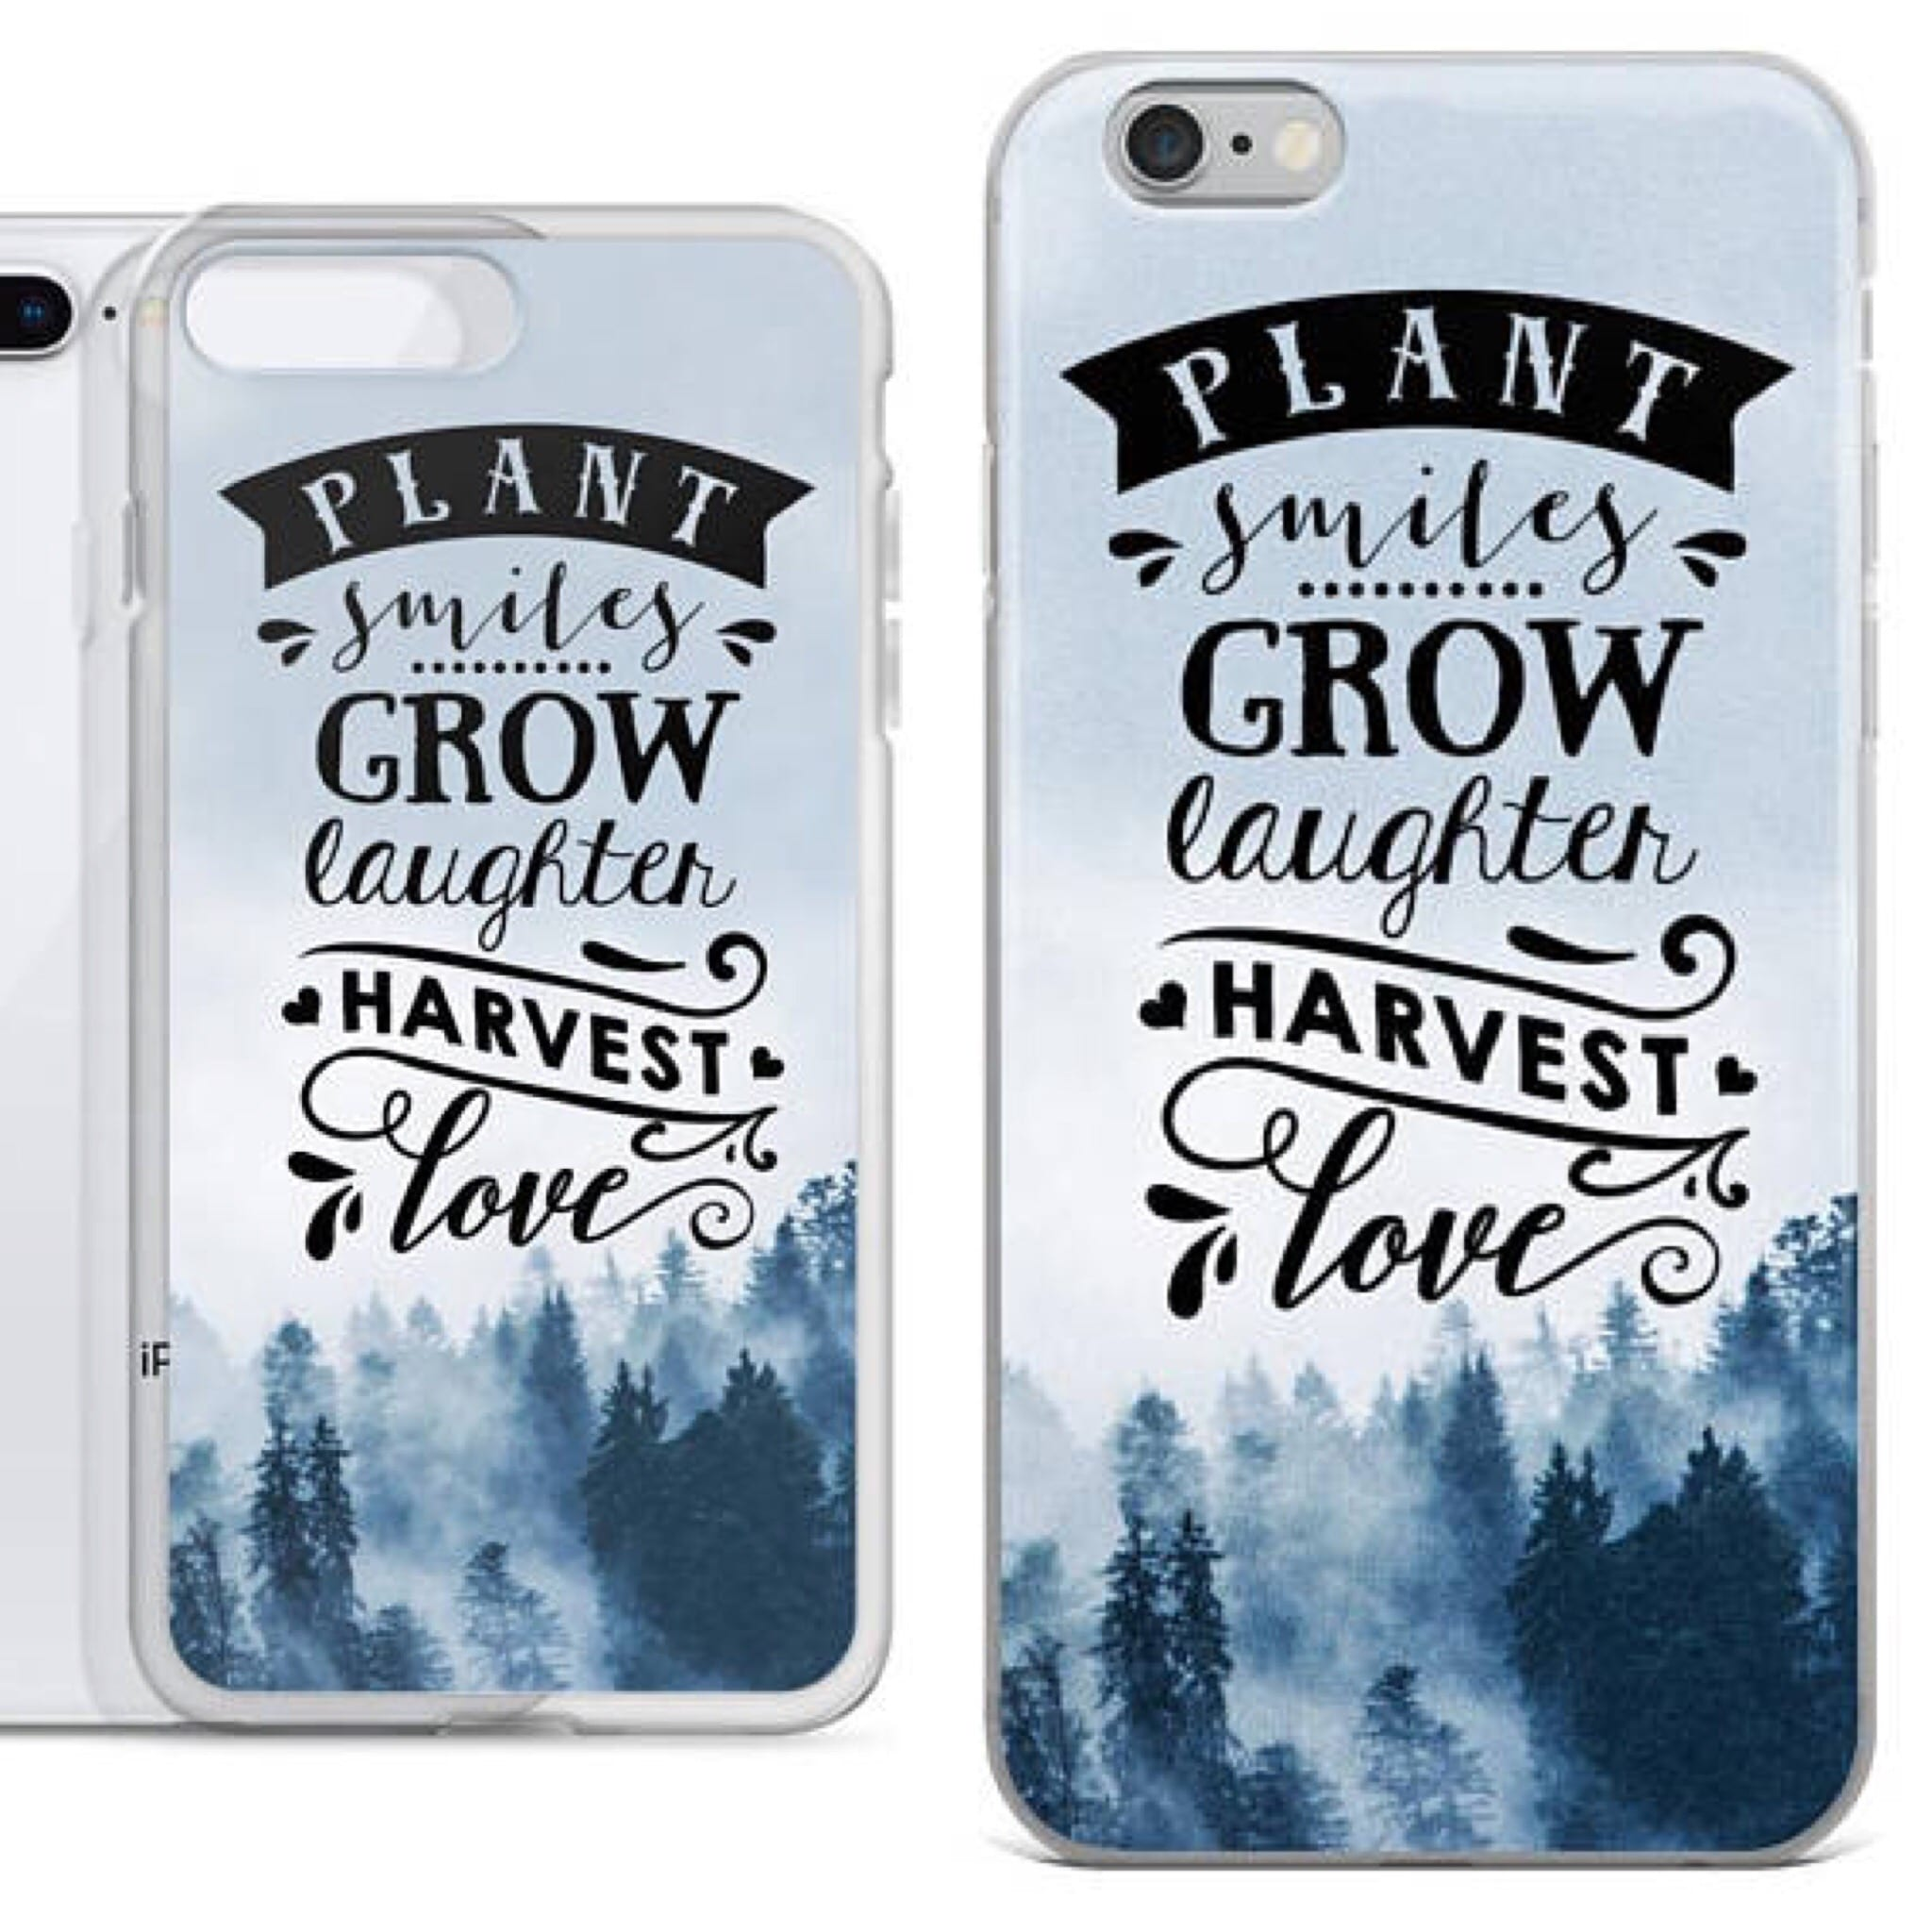 Plant Smiles Grow Laughter Quotes iPhone Case, iPhone X Case, Motivational Quotes iPhone 8 Plus Case, iPhone 7 case